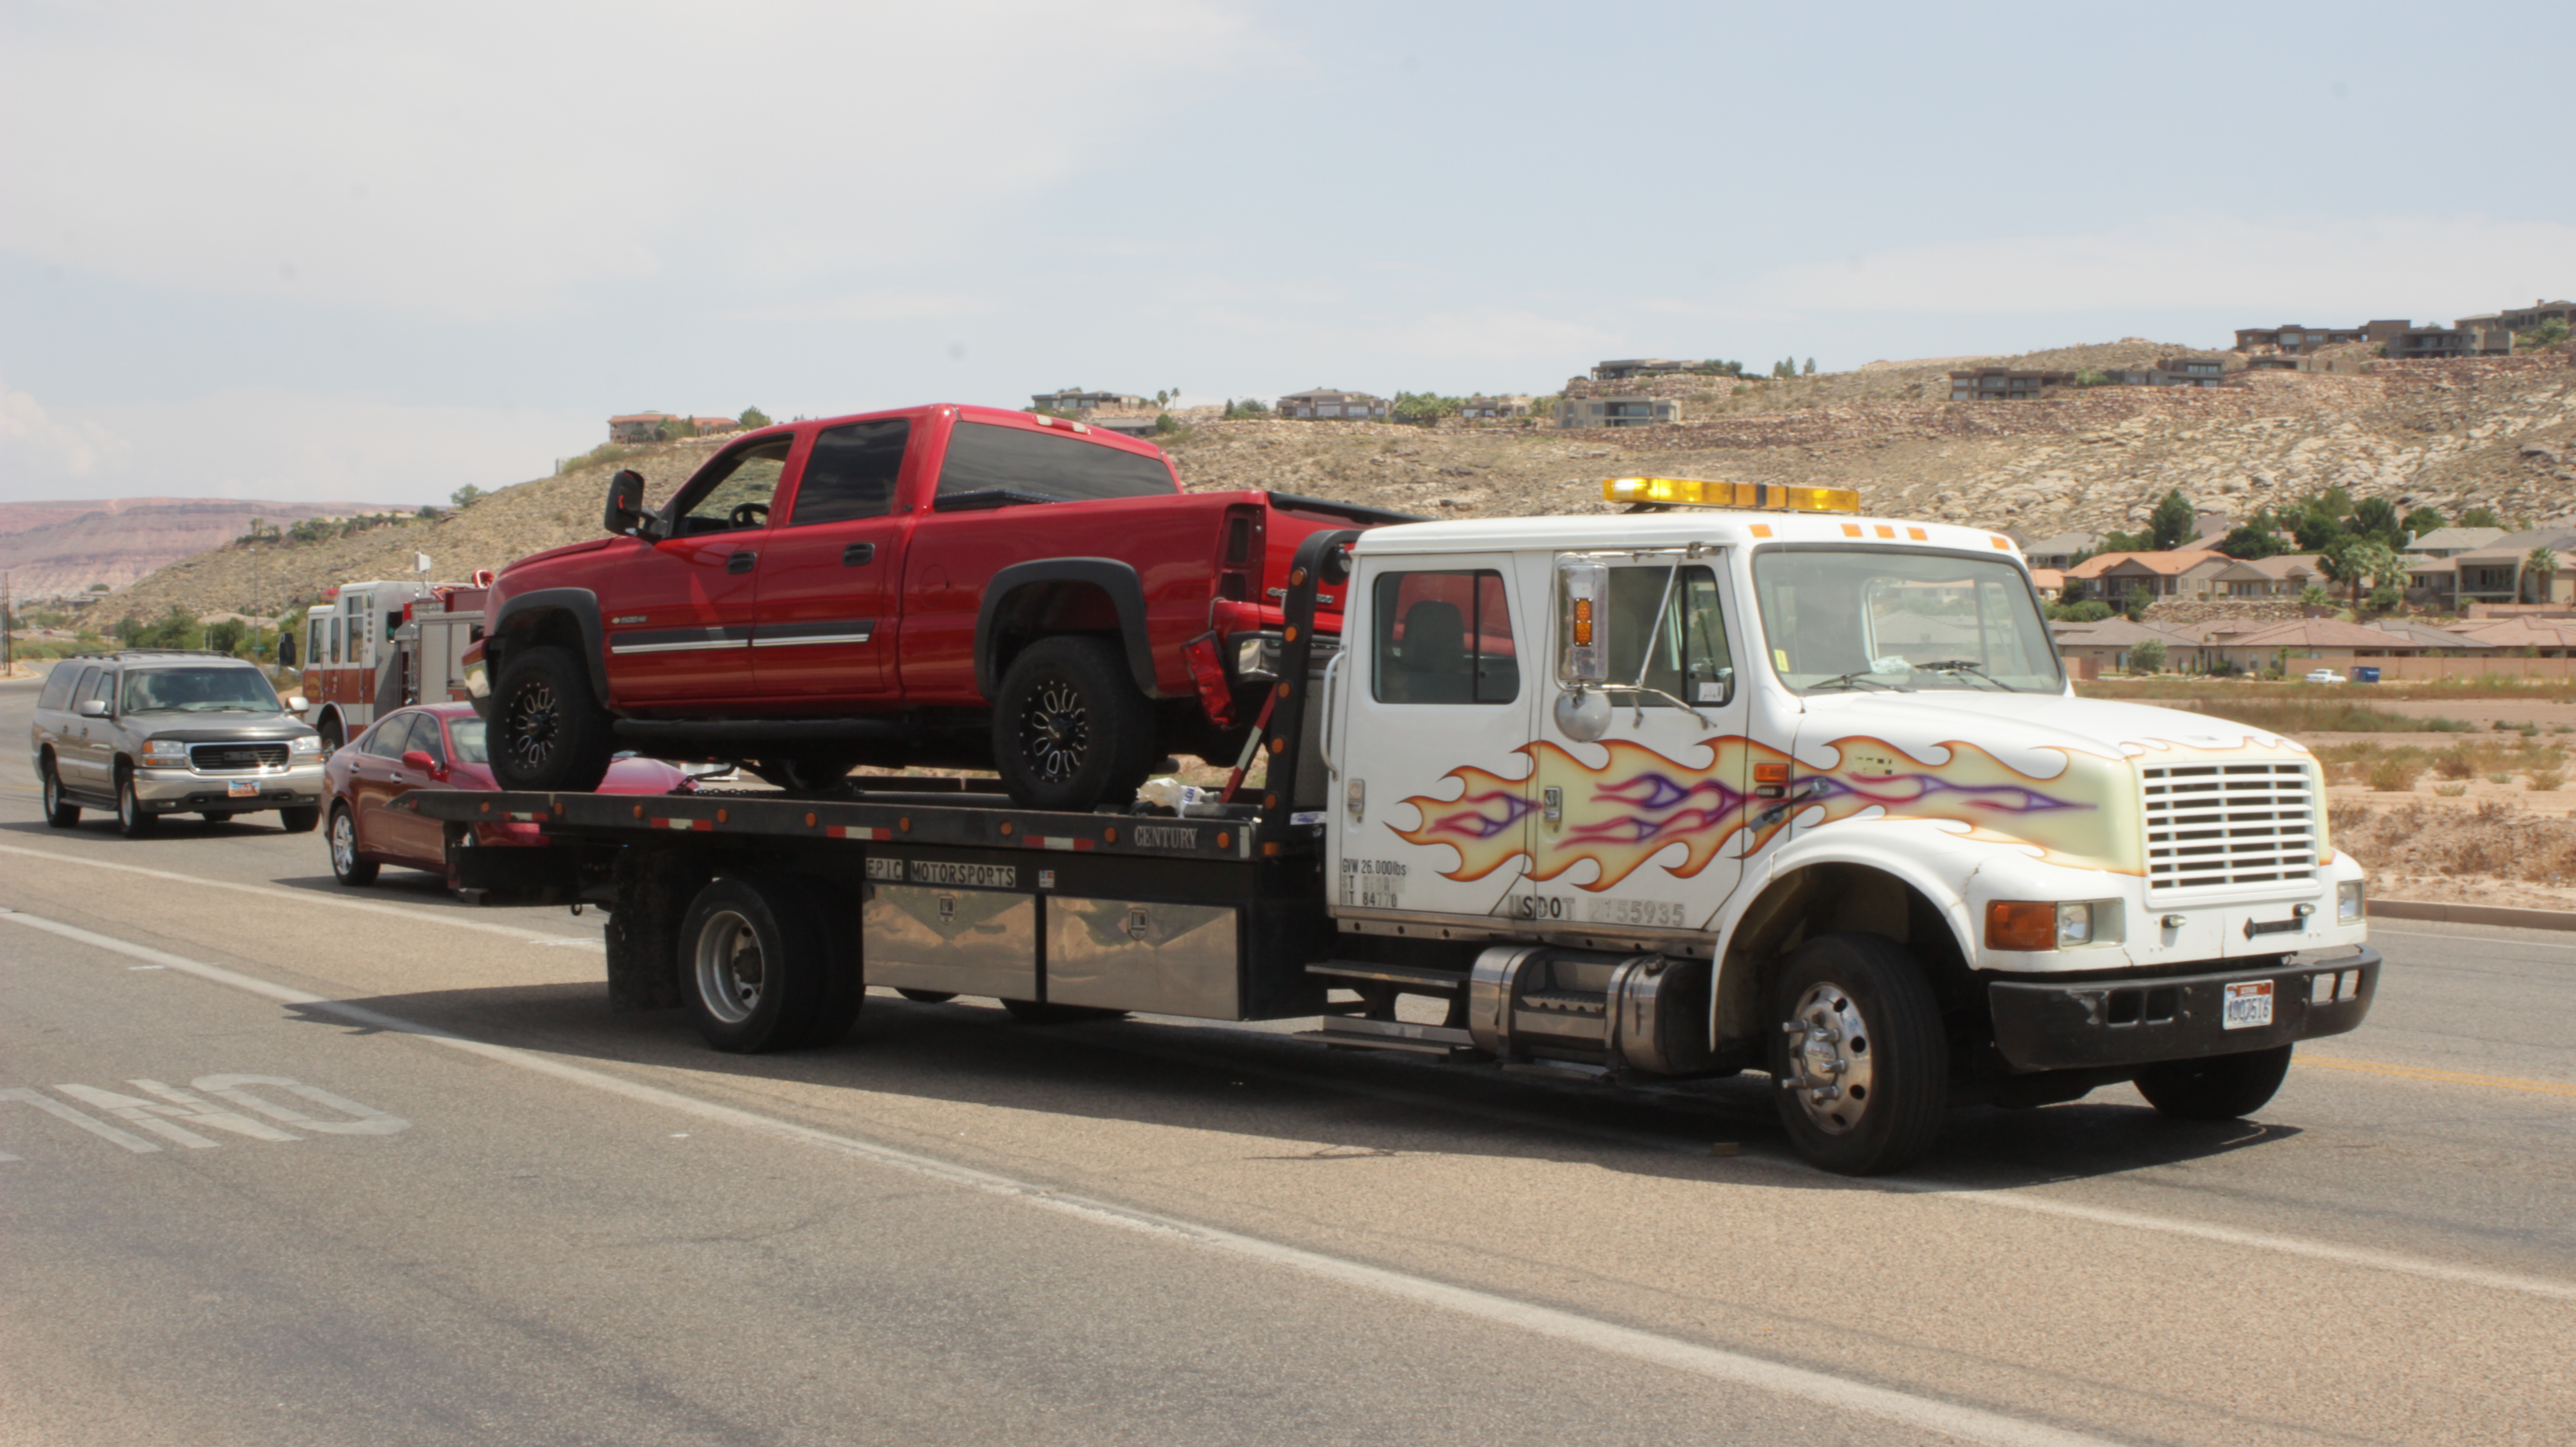 A collision between a Chevy Cobalt and a Chevy Silverado caused substantial damage to both vehicles. The driver of the Cobalt was cited for failure to yield, St. George, Utah, Aug 18, 2016 | Photo by Don Gilman, St. George News